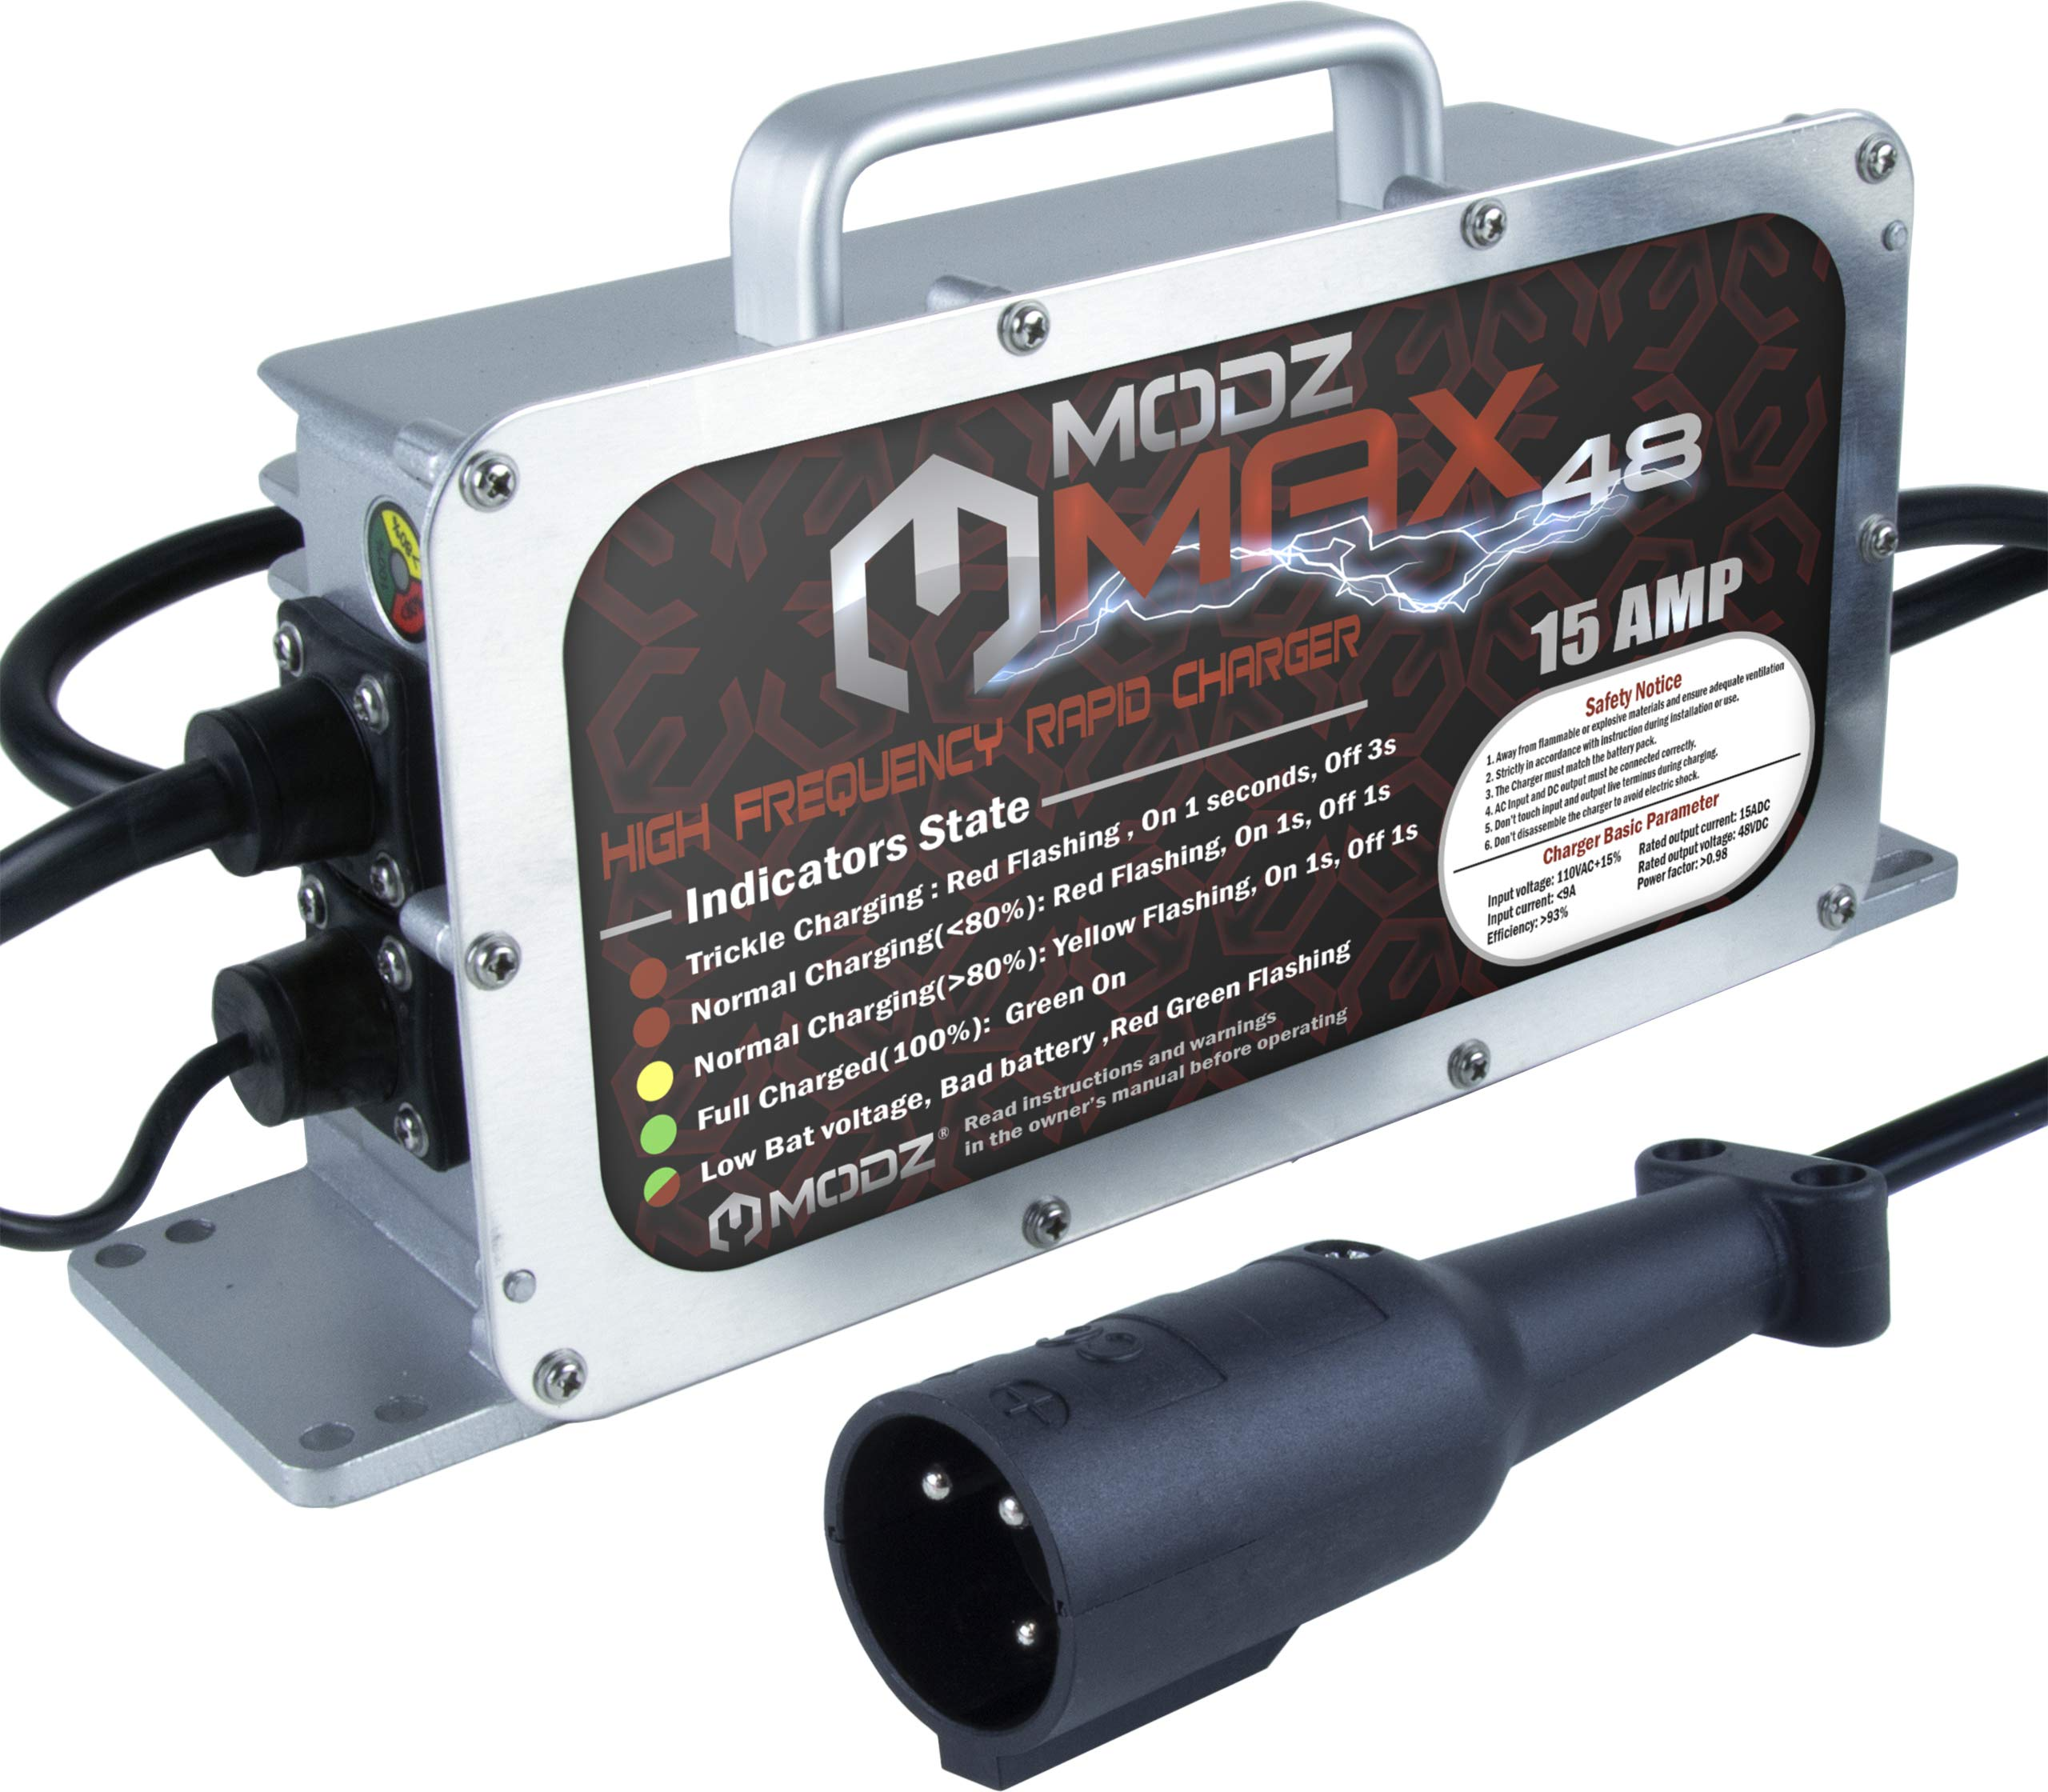 MODZ Max48 15 AMP Club Car Battery Charger for 48 Volt Golf Carts without Onboard Computer (OBC)